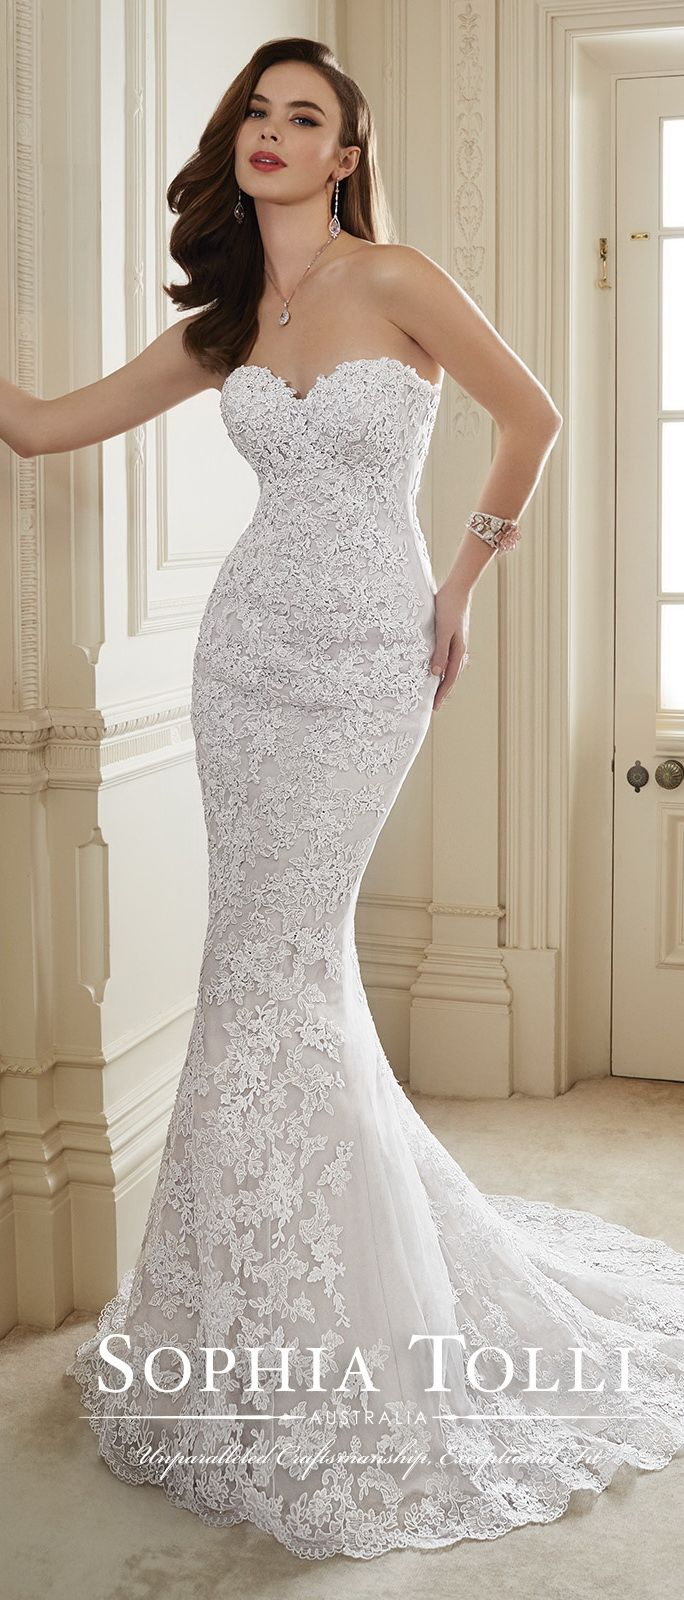 Sophia Tolli Strapless Sweetheart Lace Mermaid Bridal Gown 2016 ...